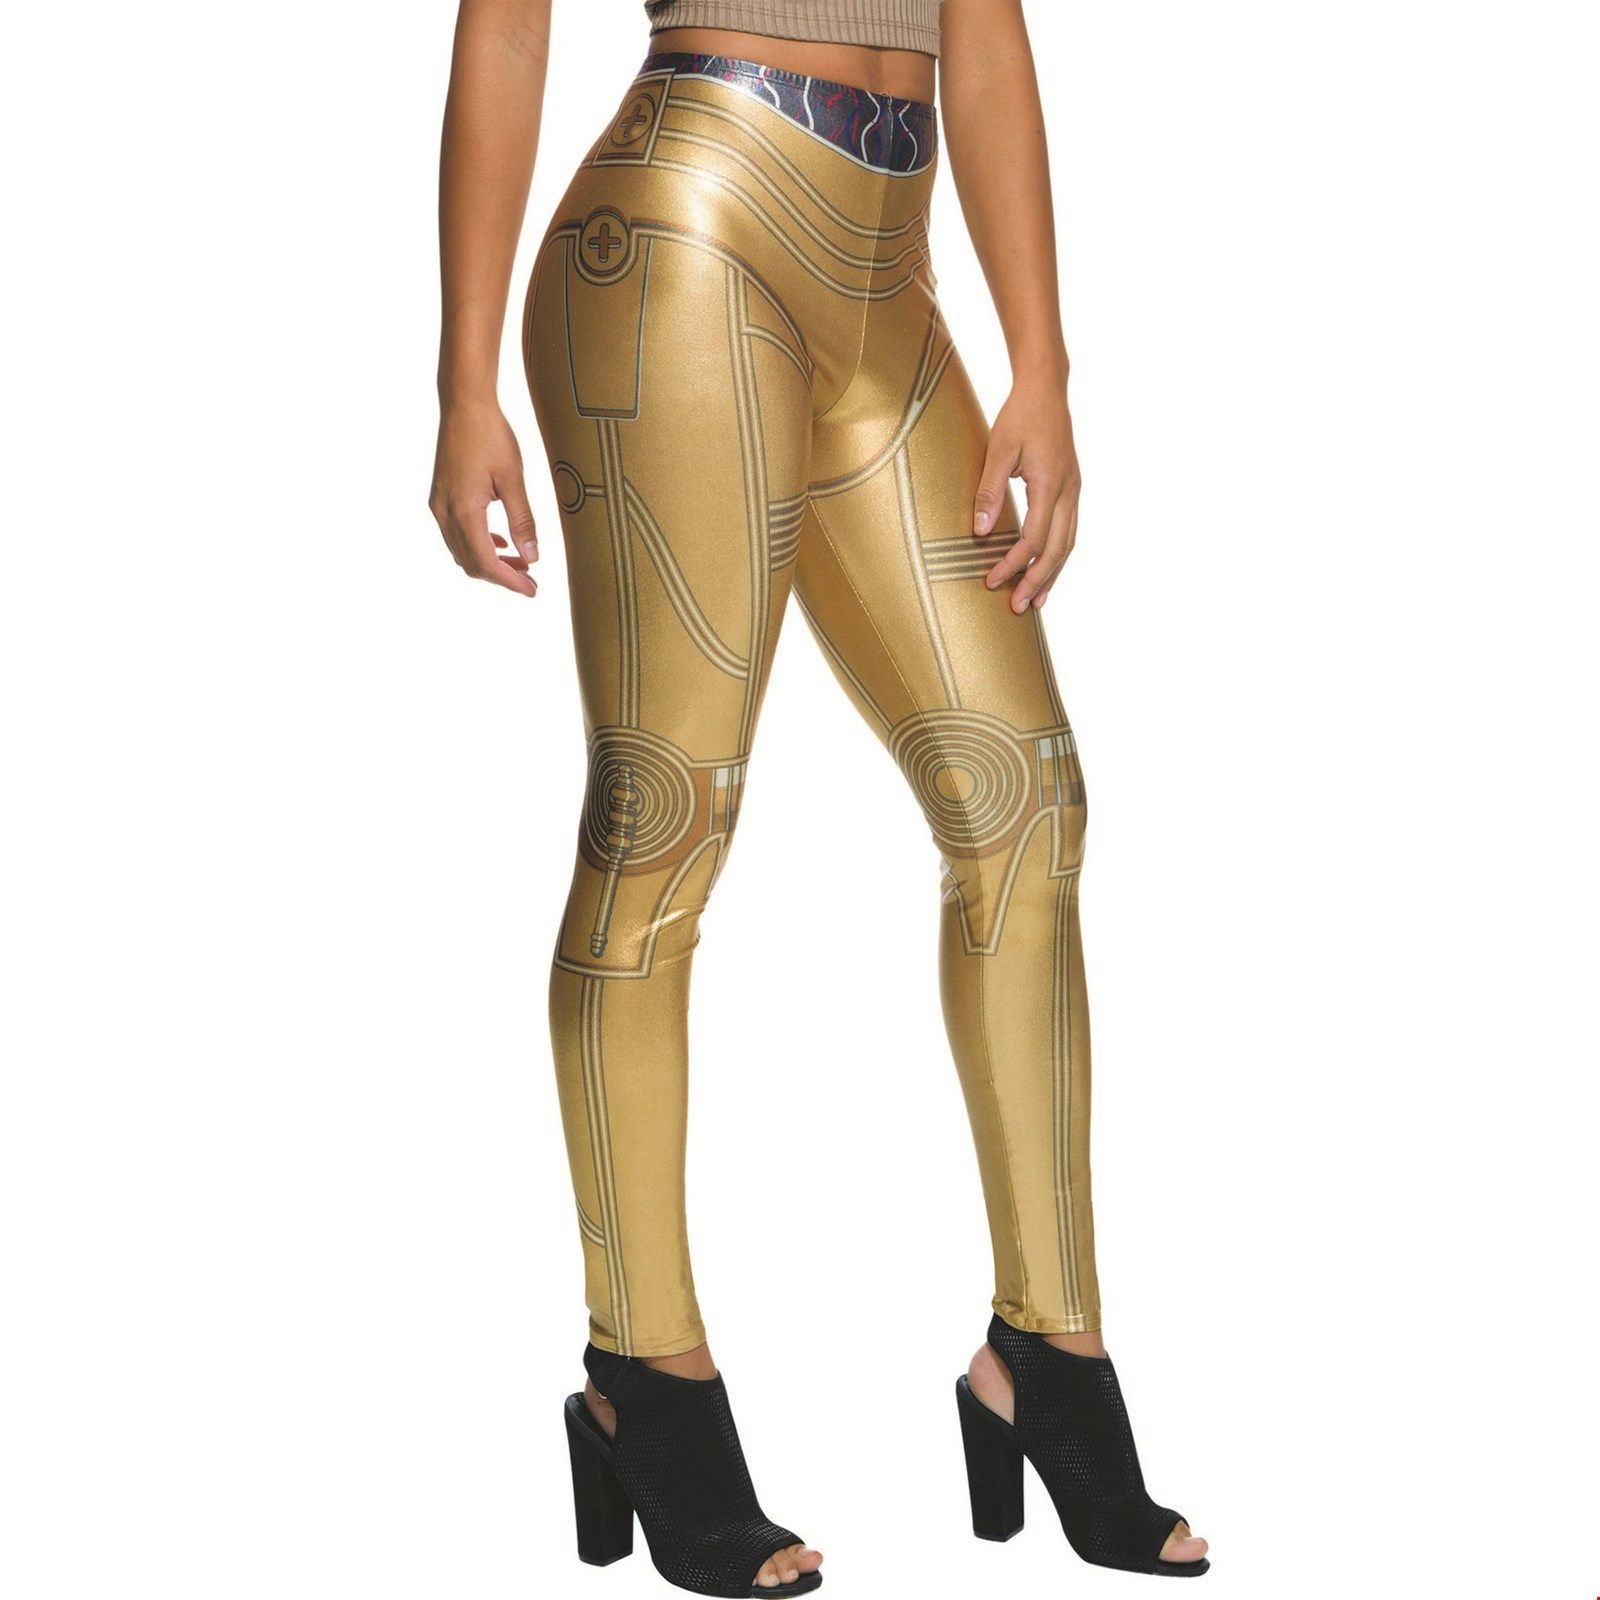 Star Wars Womens C3Po Leggings Halloween Costume Accessory